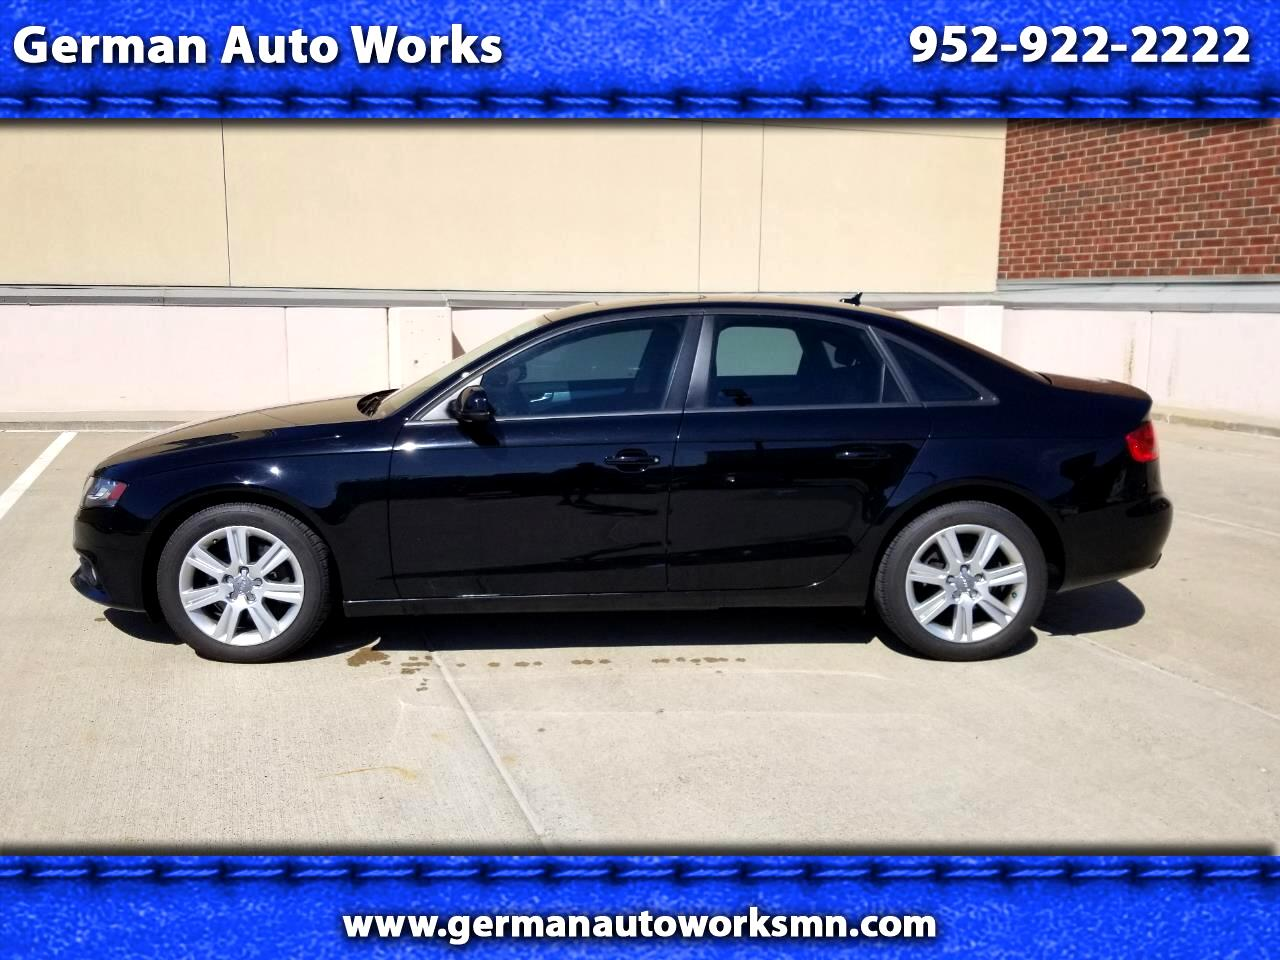 2010 Audi A4 4DR Sedan Manual Transmission Quattro 2.0T Premium